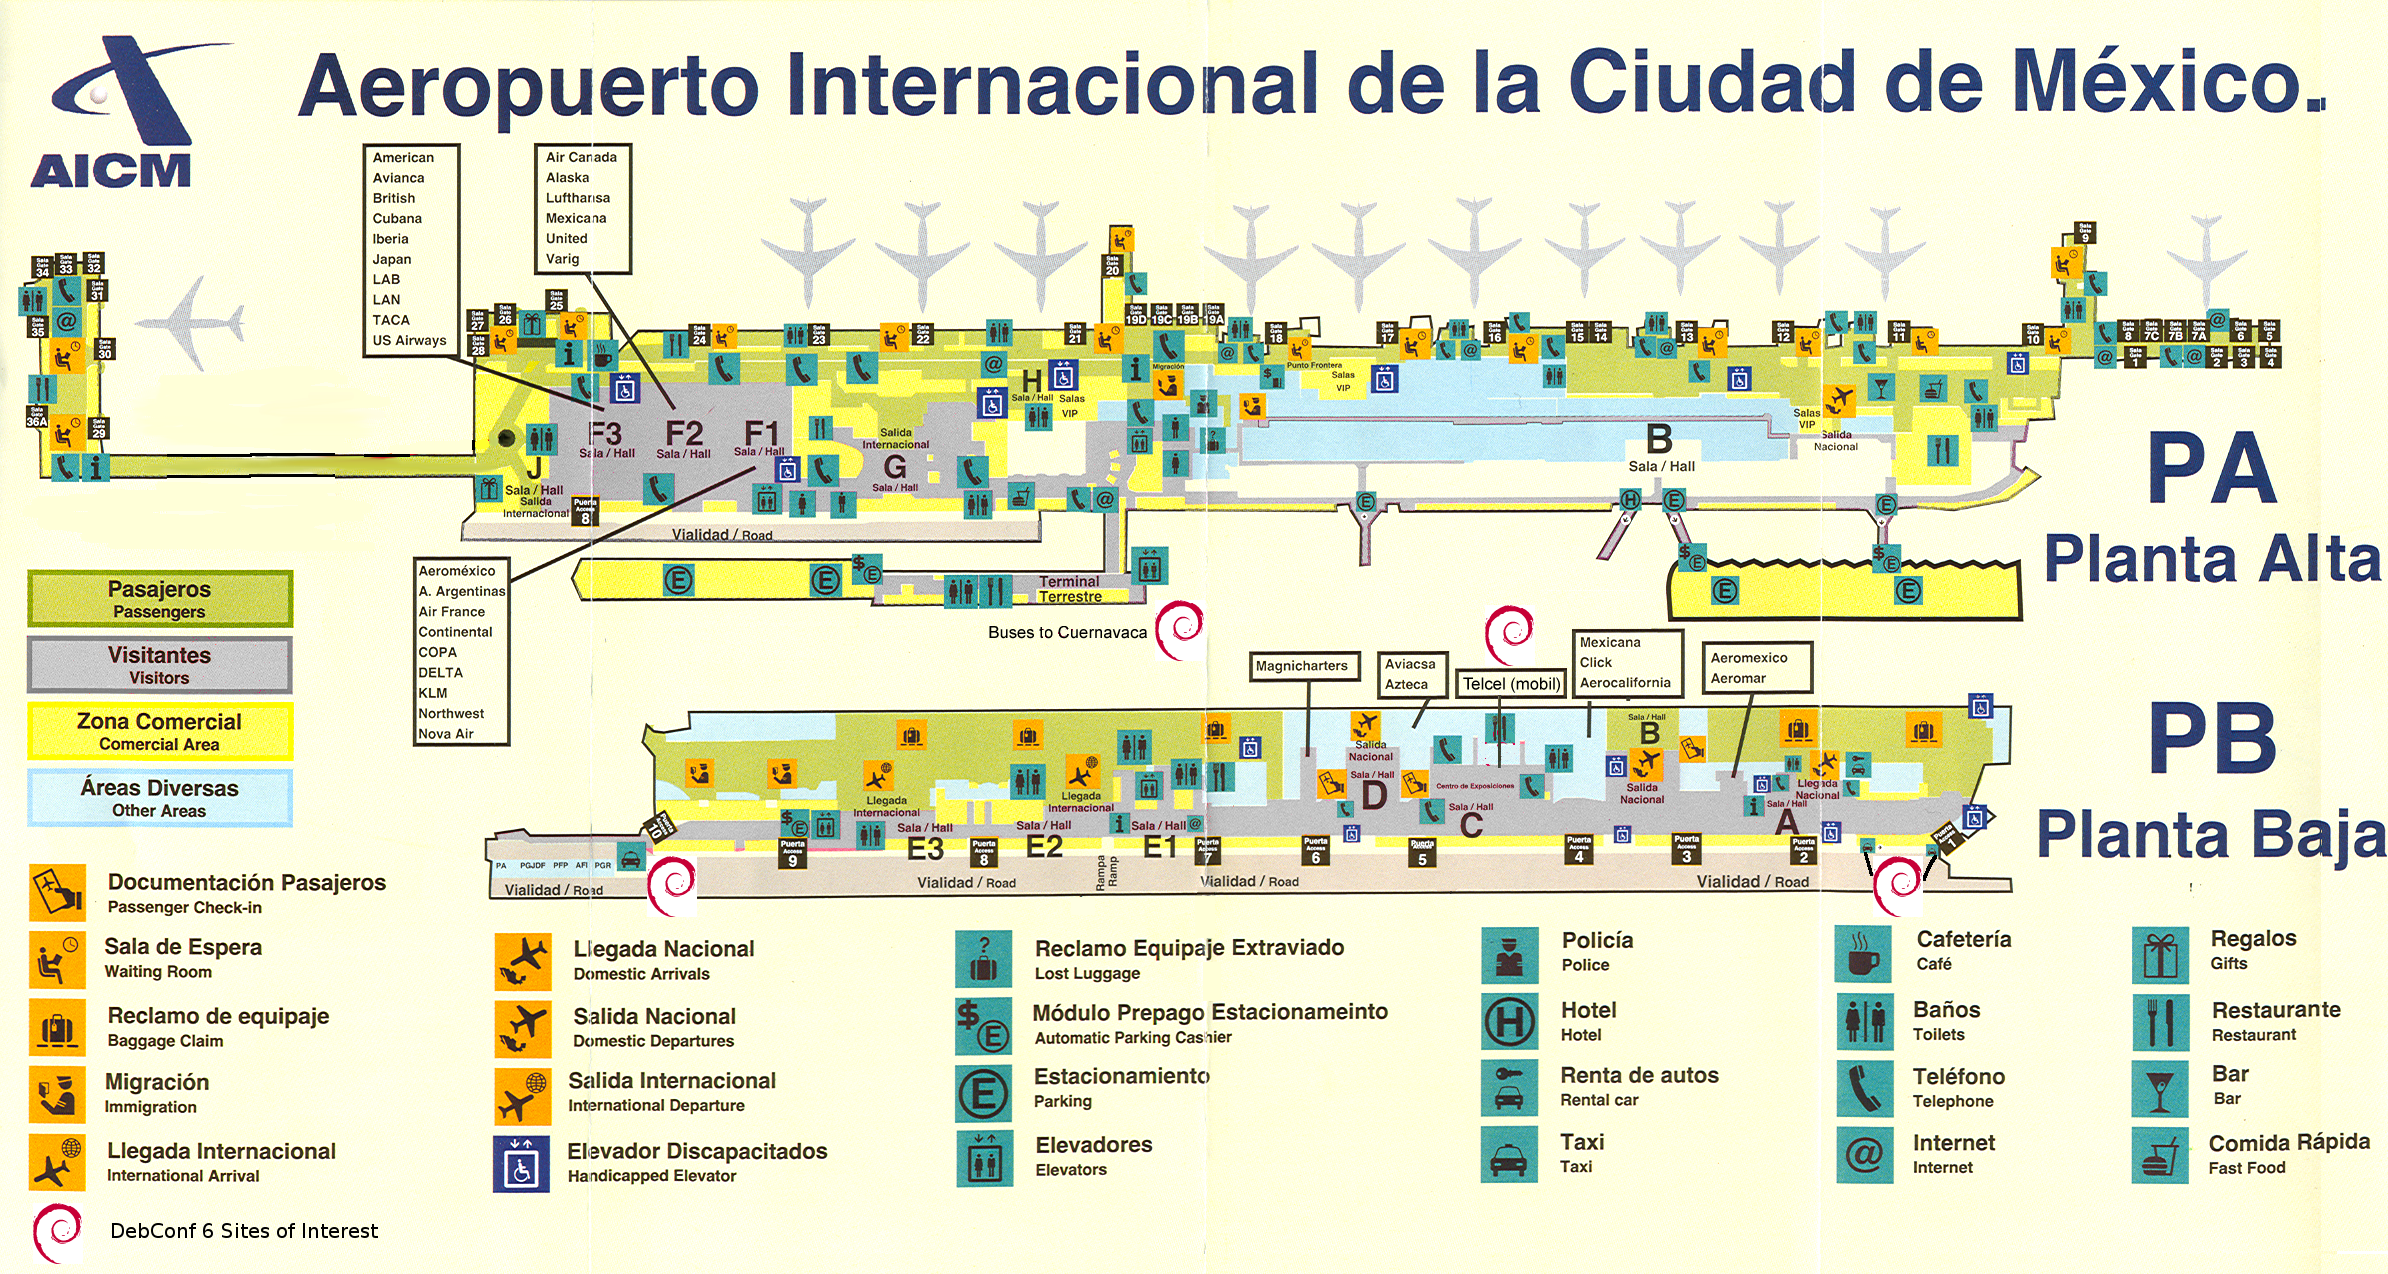 Mexico City Airport Map Venustiano Carranza Mexico Mappery - Airports in mexico